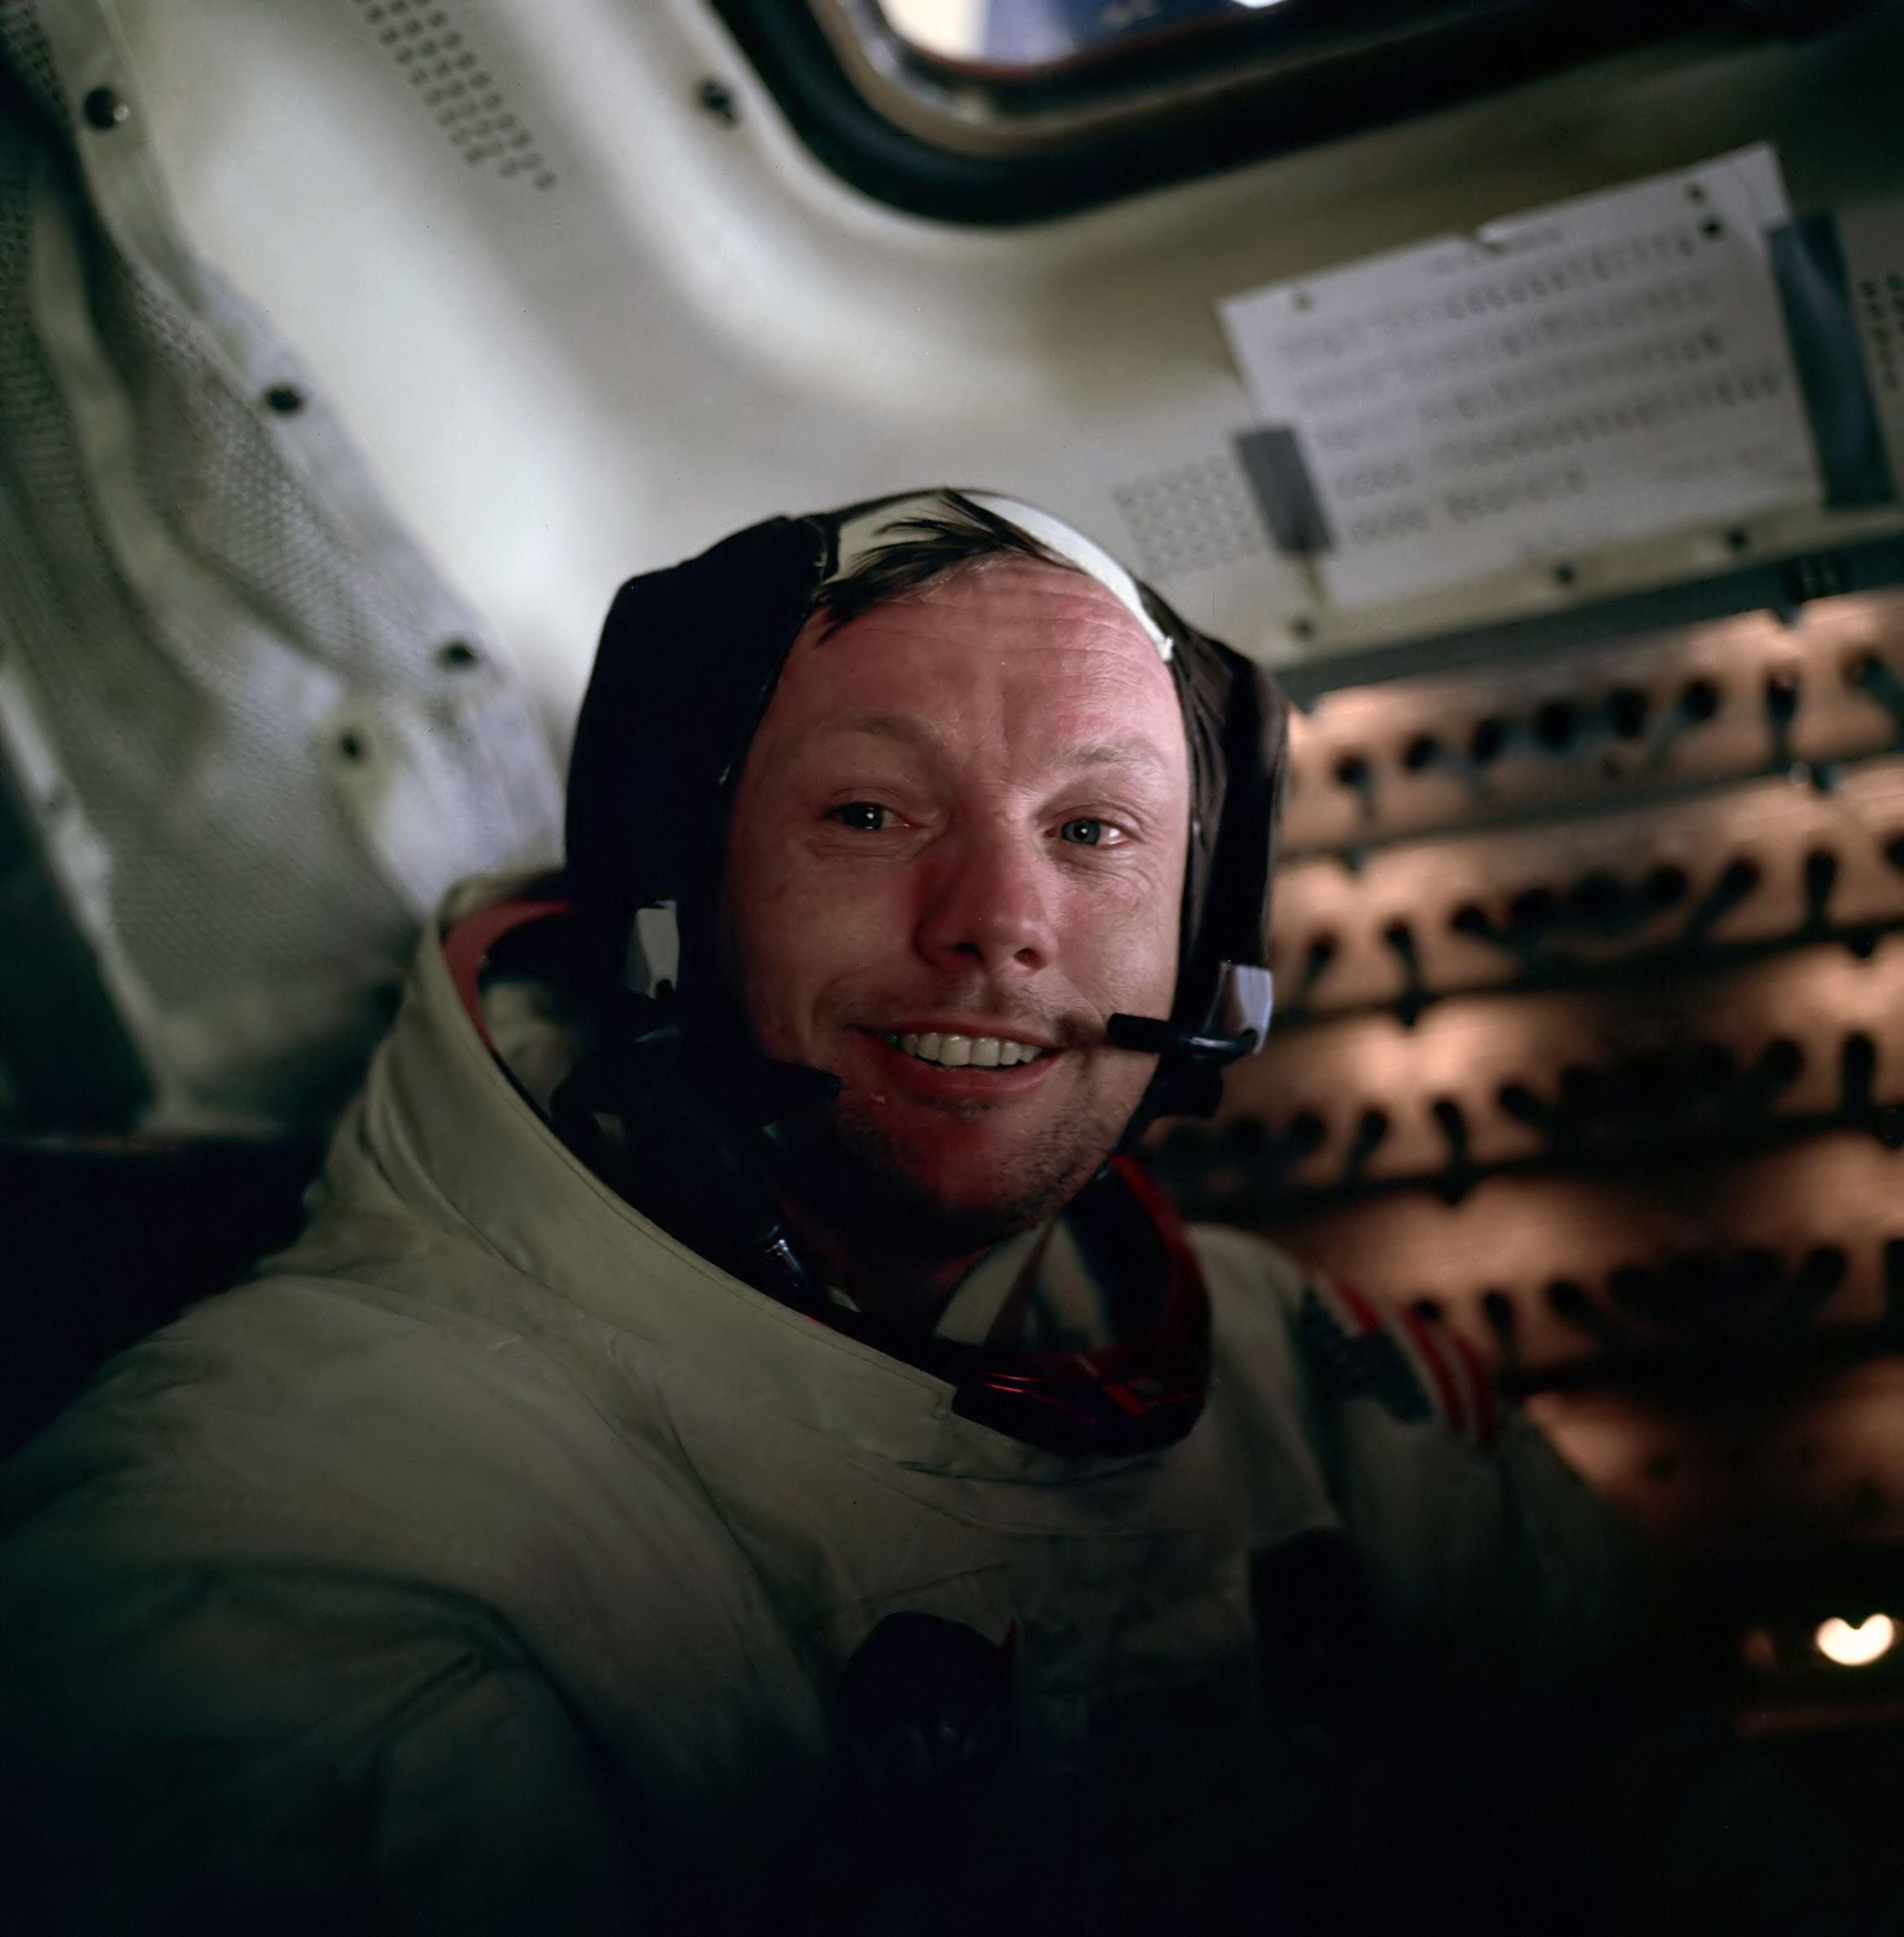 Neil Armstrong wallpapers, Celebrity, HQ Neil Armstrong pictures